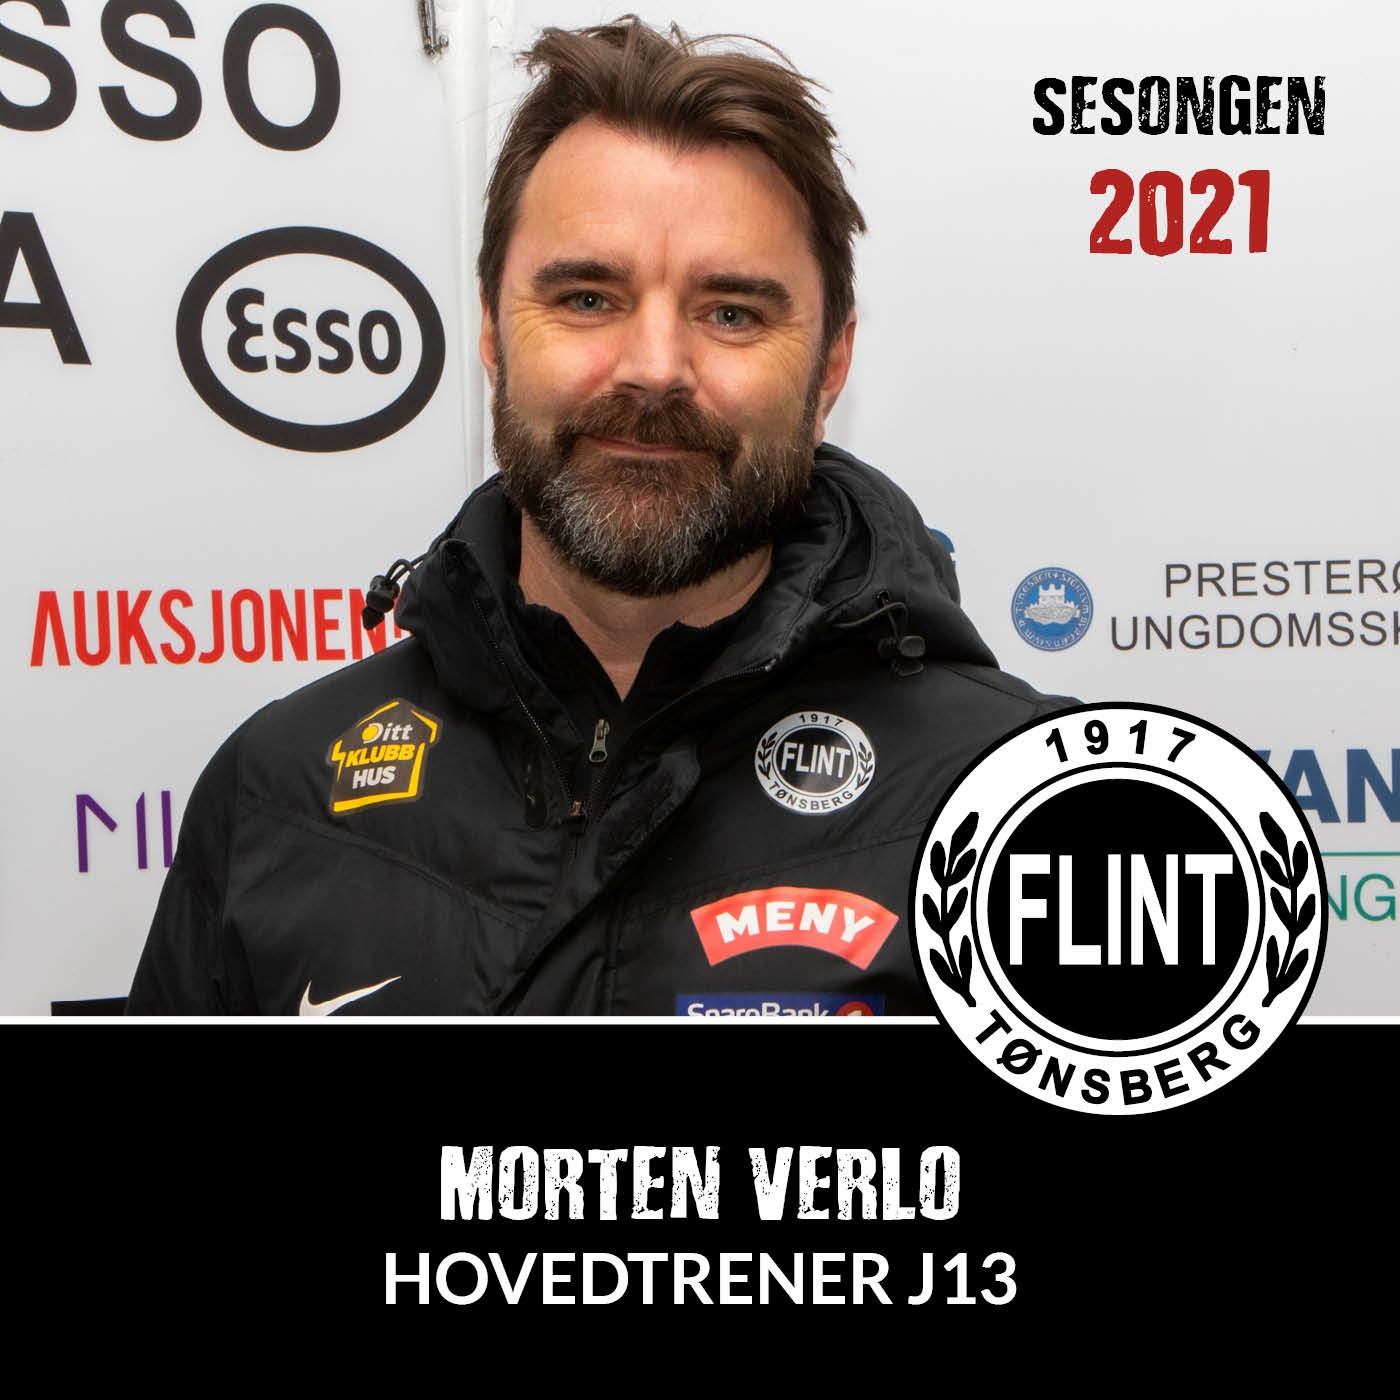 https://www.flintfotball.no/wp-content/uploads/2021/02/Trener-Morten-Verlo.jpg